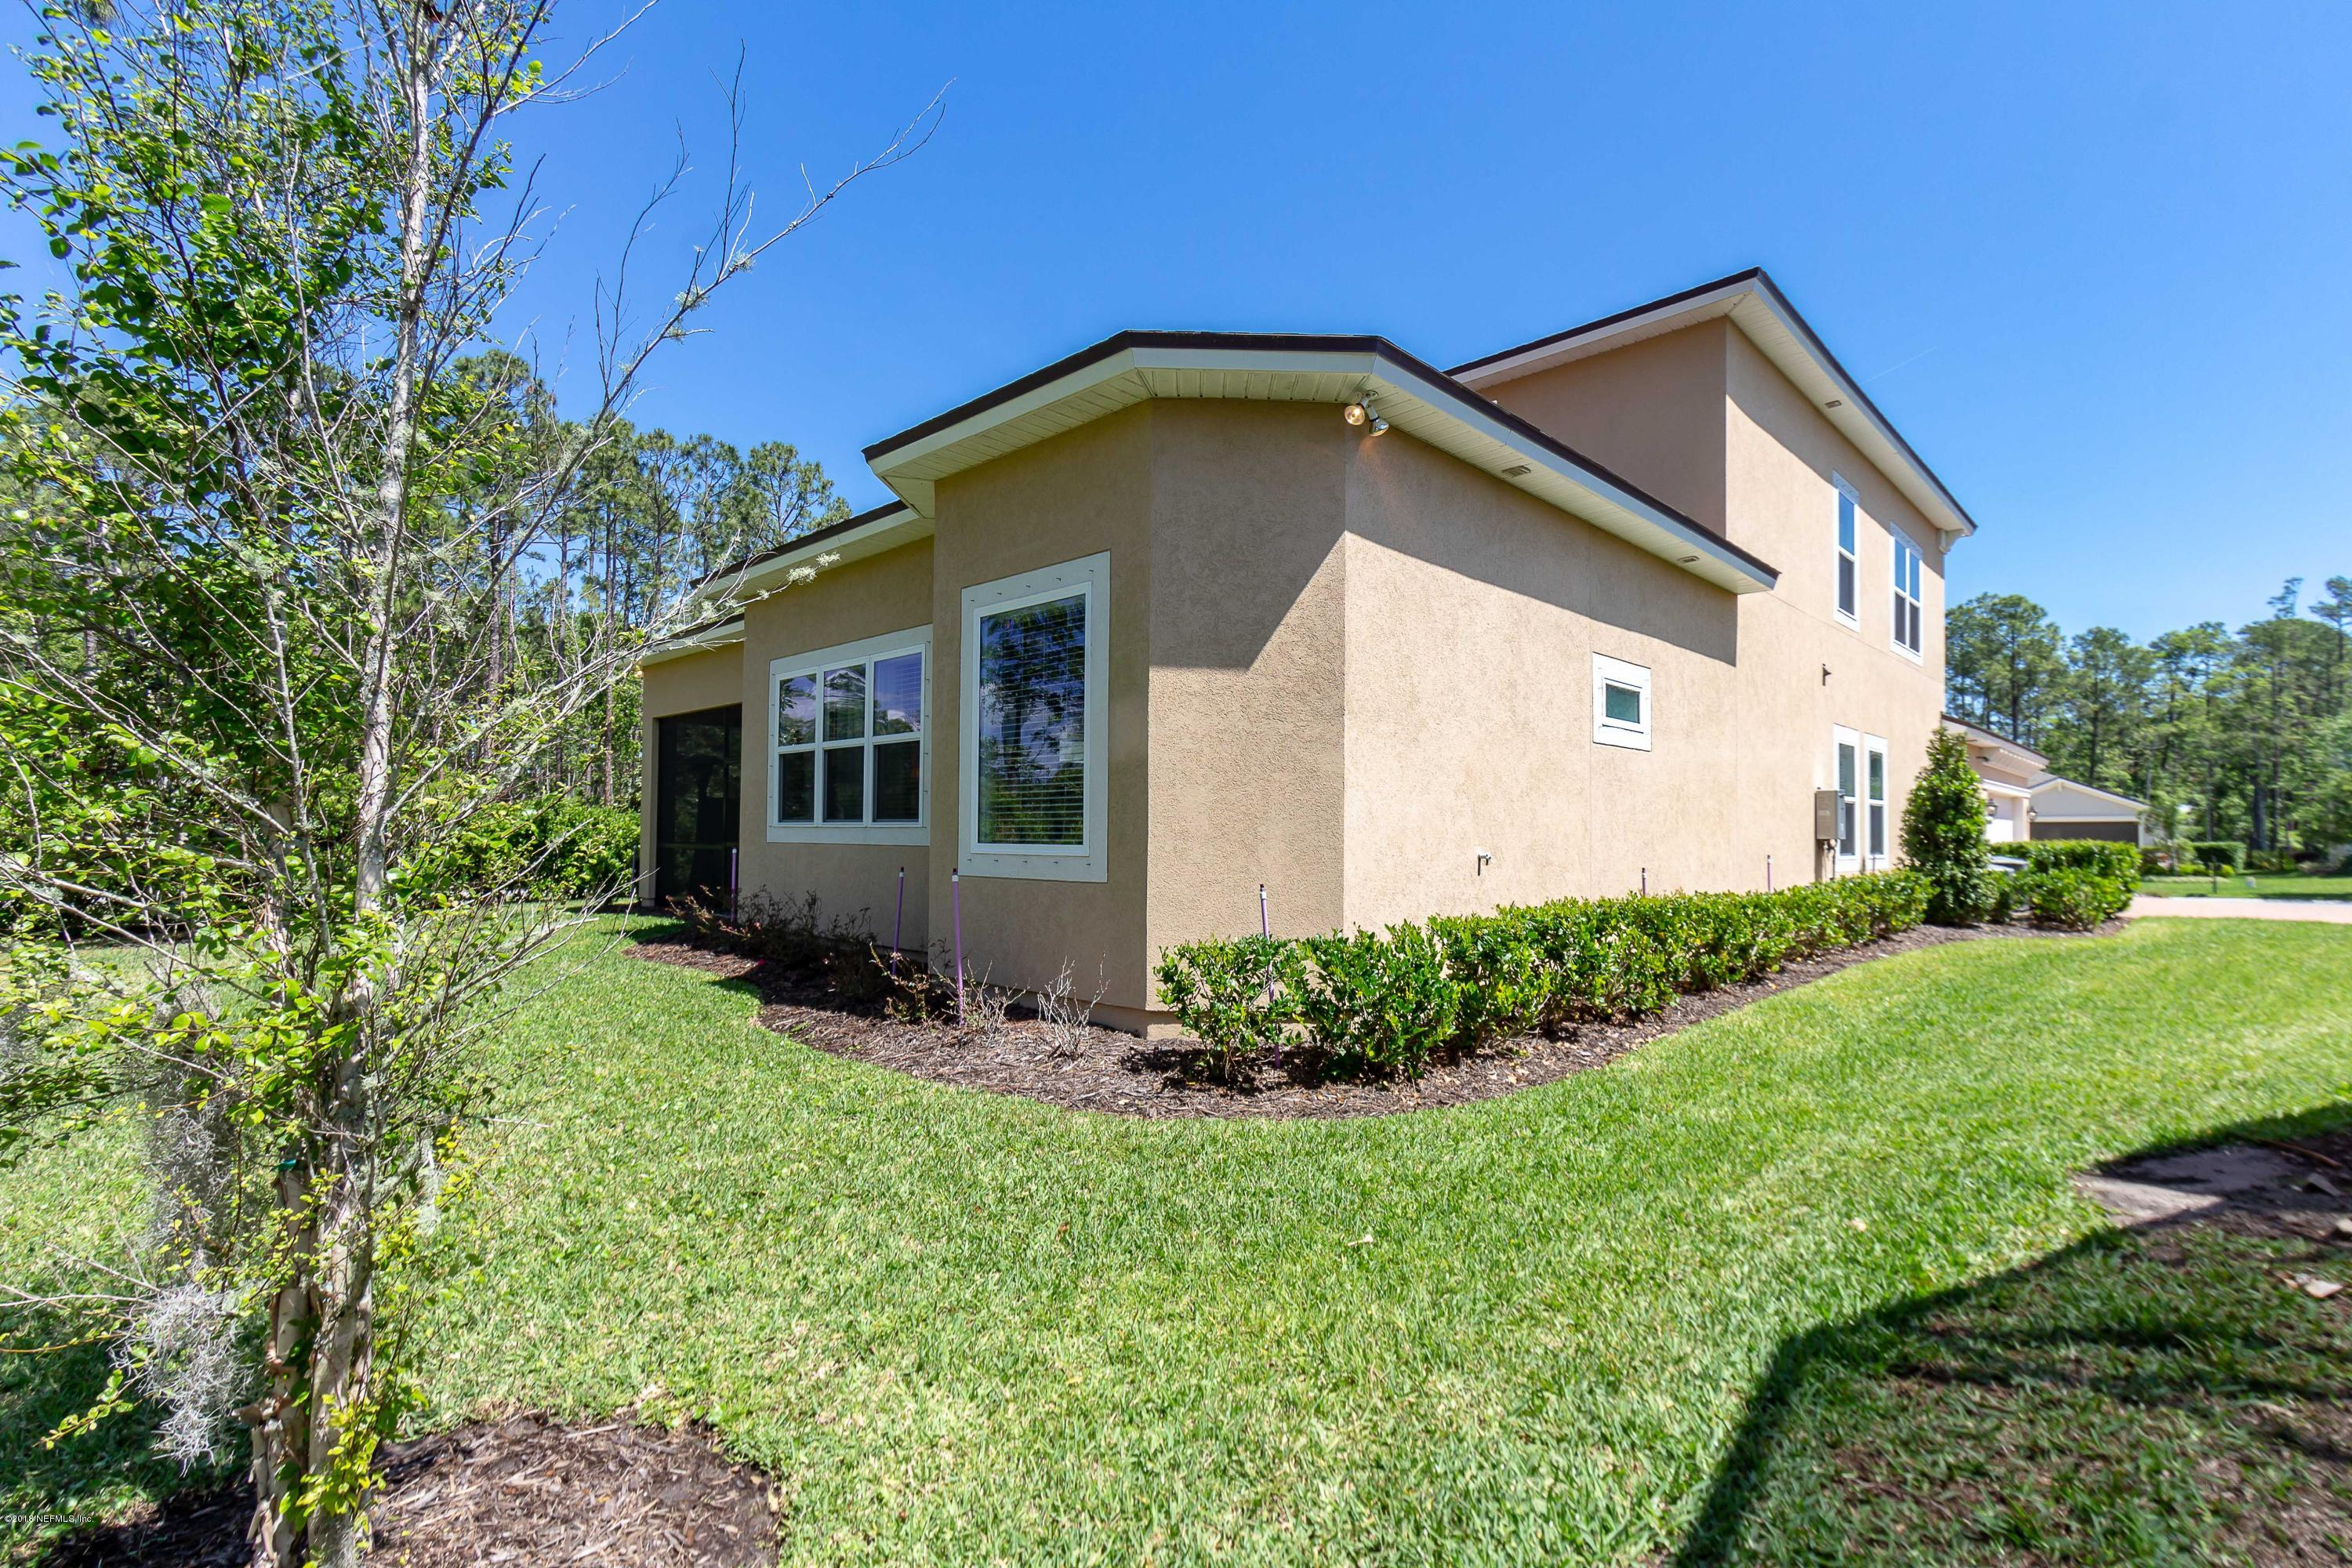 28 GULFSTREAM, PONTE VEDRA, FLORIDA 32081, 4 Bedrooms Bedrooms, ,4 BathroomsBathrooms,Residential - single family,For sale,GULFSTREAM,962239